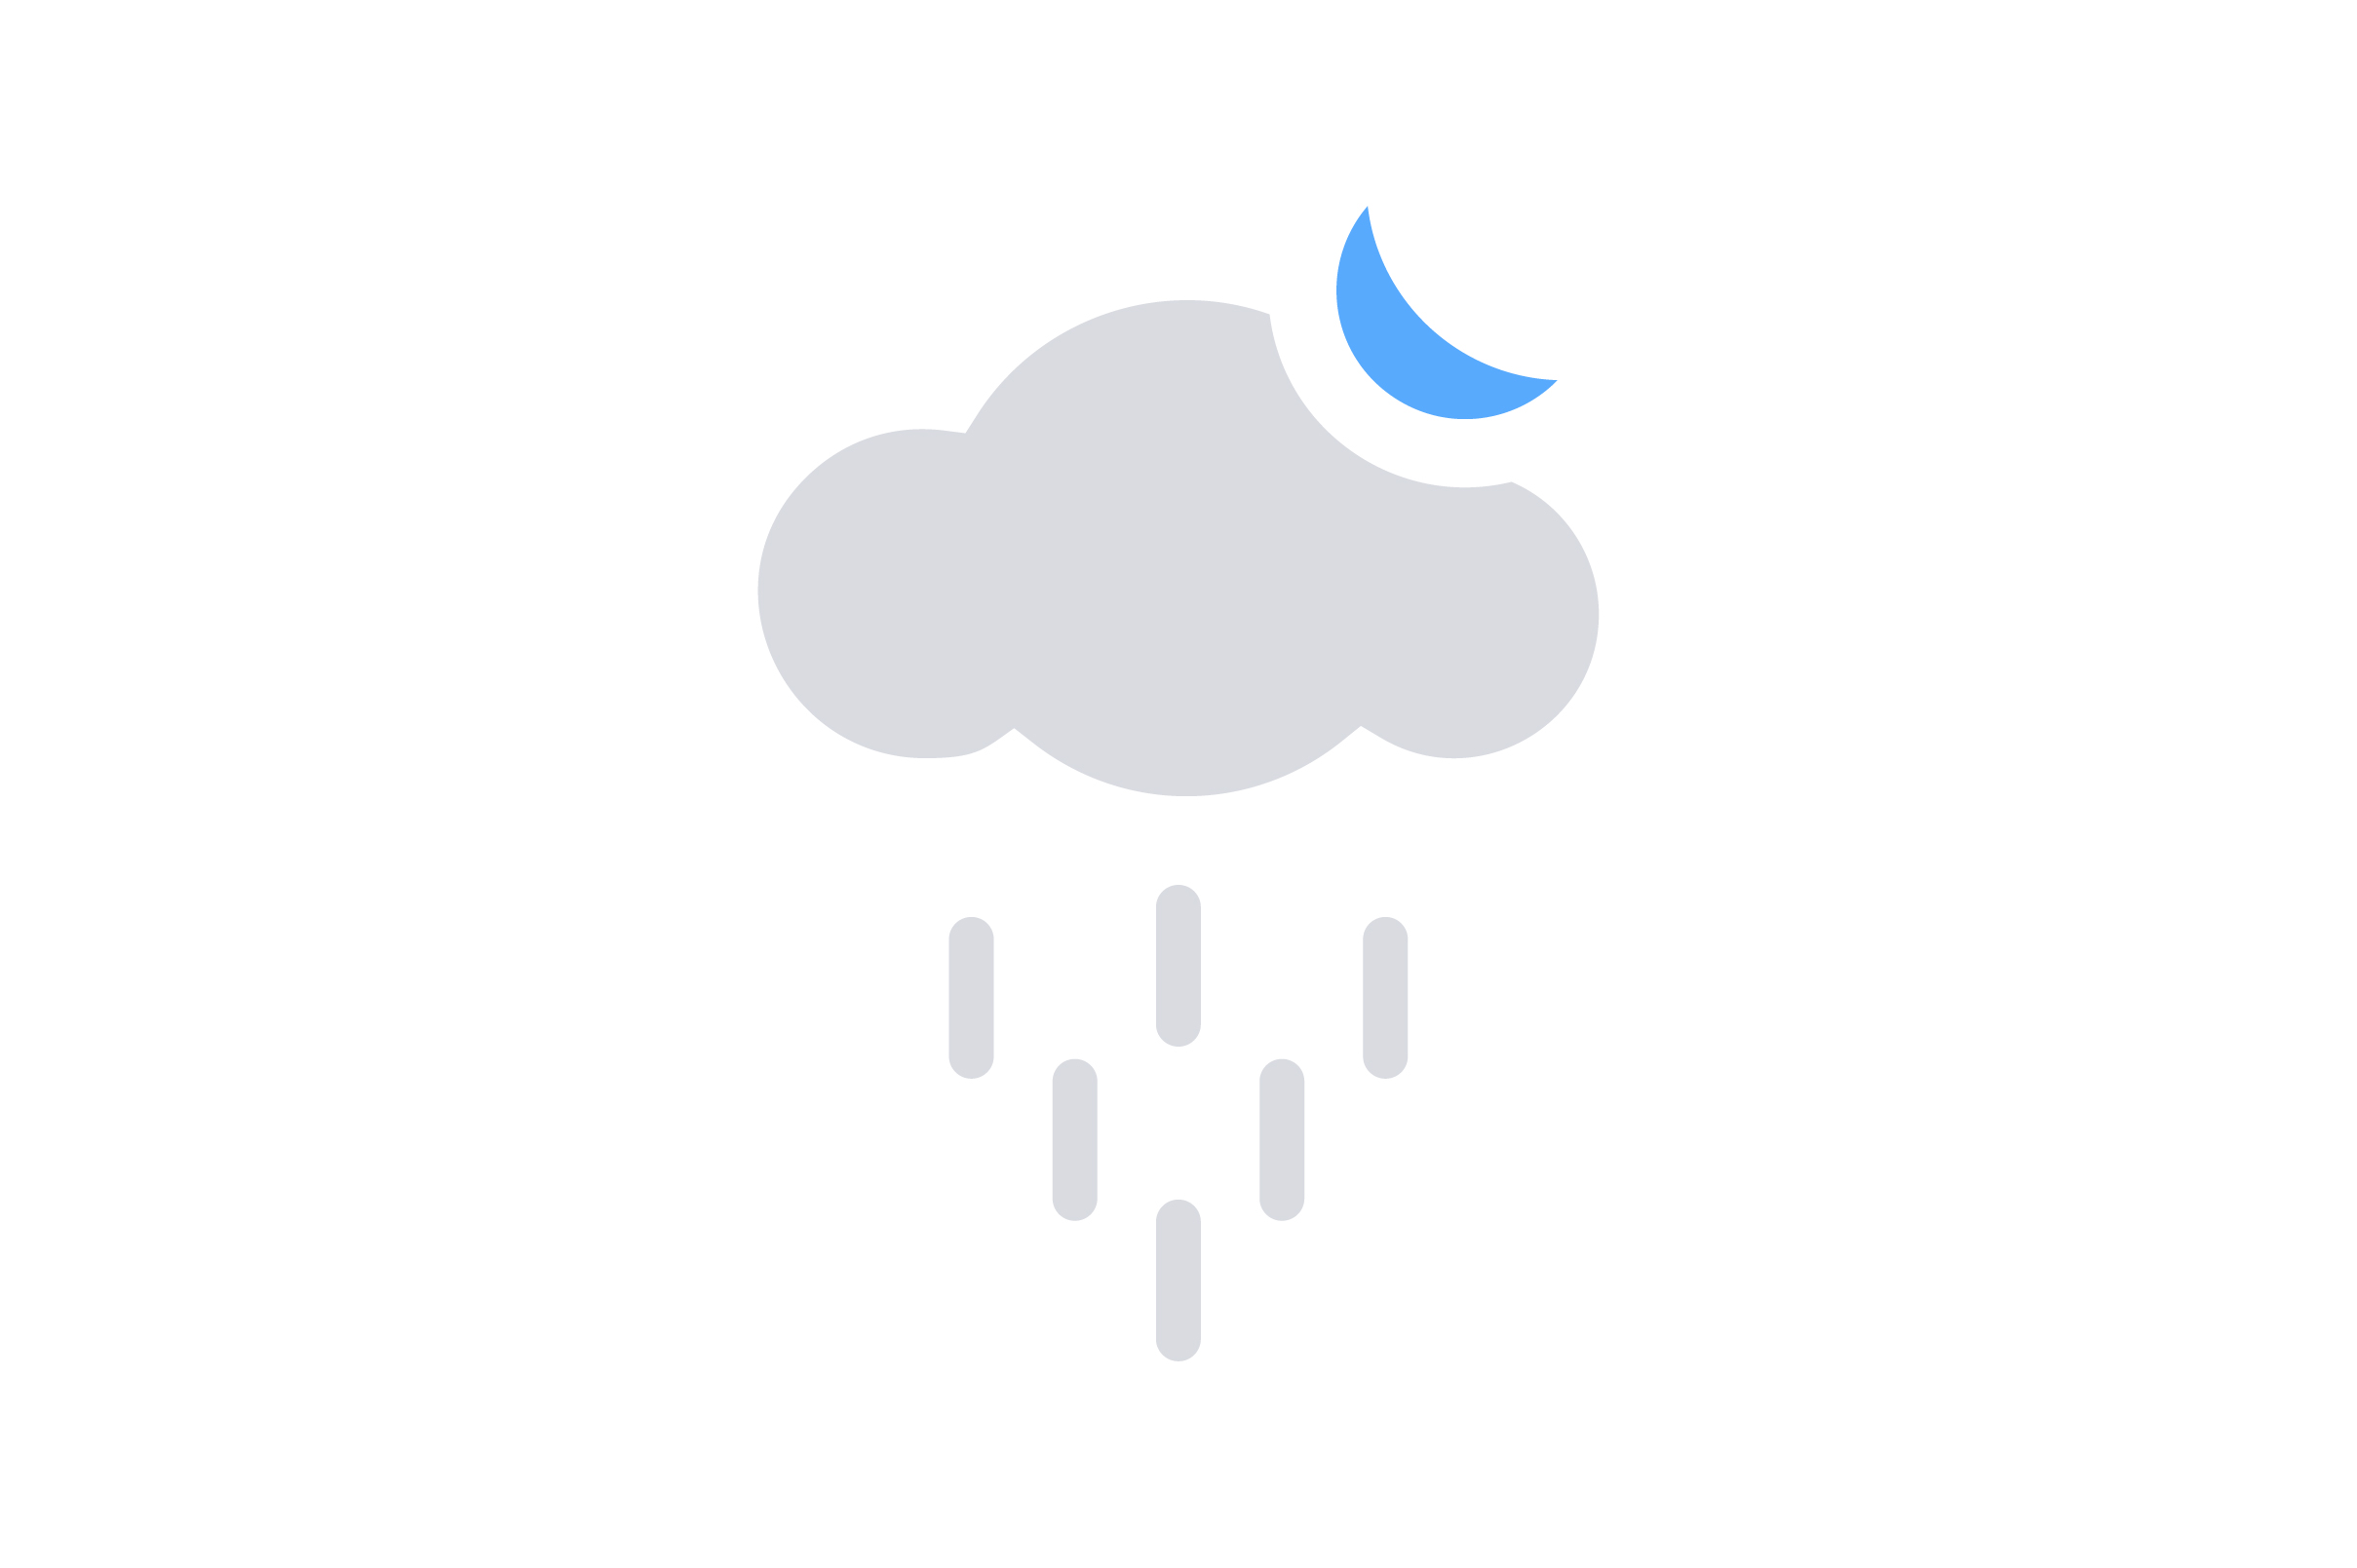 Download Free Cloud Rain And Moon Flat Icon Graphic By Riduwan Molla for Cricut Explore, Silhouette and other cutting machines.